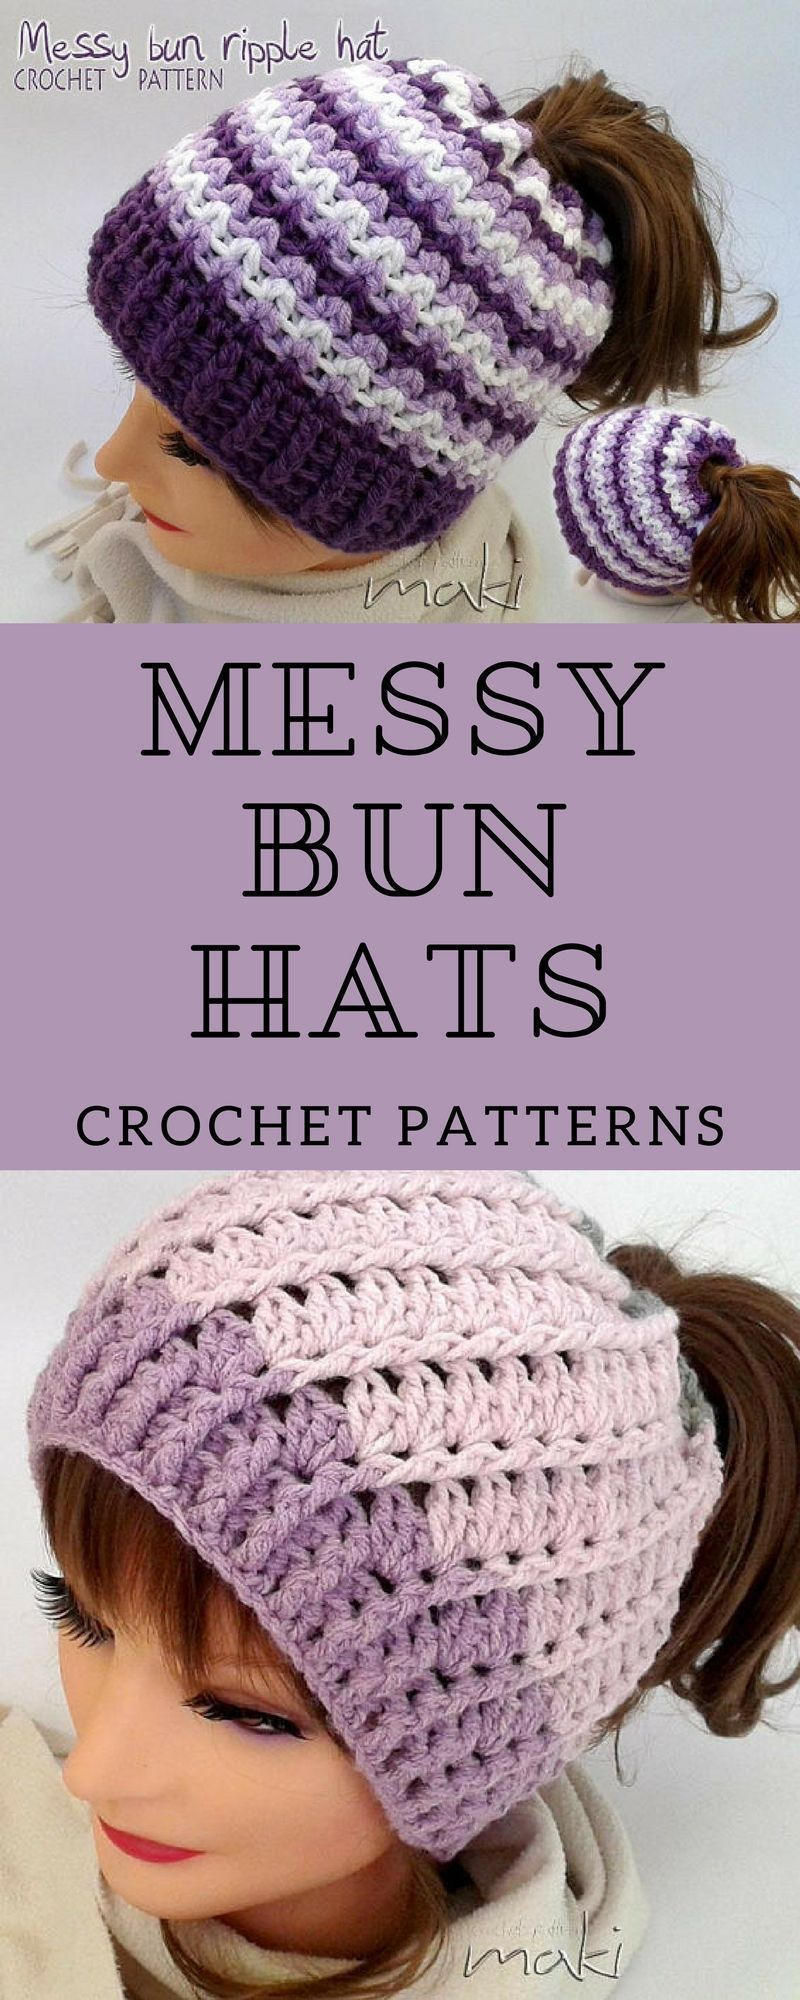 Perfectly purple intricate patterned messy bun hat crochet patterns. looks like the top can also be drawn closed for a non bun/pontail hat. #etsyaff #kidsmessyhats Perfectly purple intricate patterned messy bun hat crochet patterns. looks like the top can also be drawn closed for a non bun/pontail hat. #etsyaff #kidsmessyhats Perfectly purple intricate patterned messy bun hat crochet patterns. looks like the top can also be drawn closed for a non bun/pontail hat. #etsyaff #kidsmessyhats Perfectl #kidsmessyhats